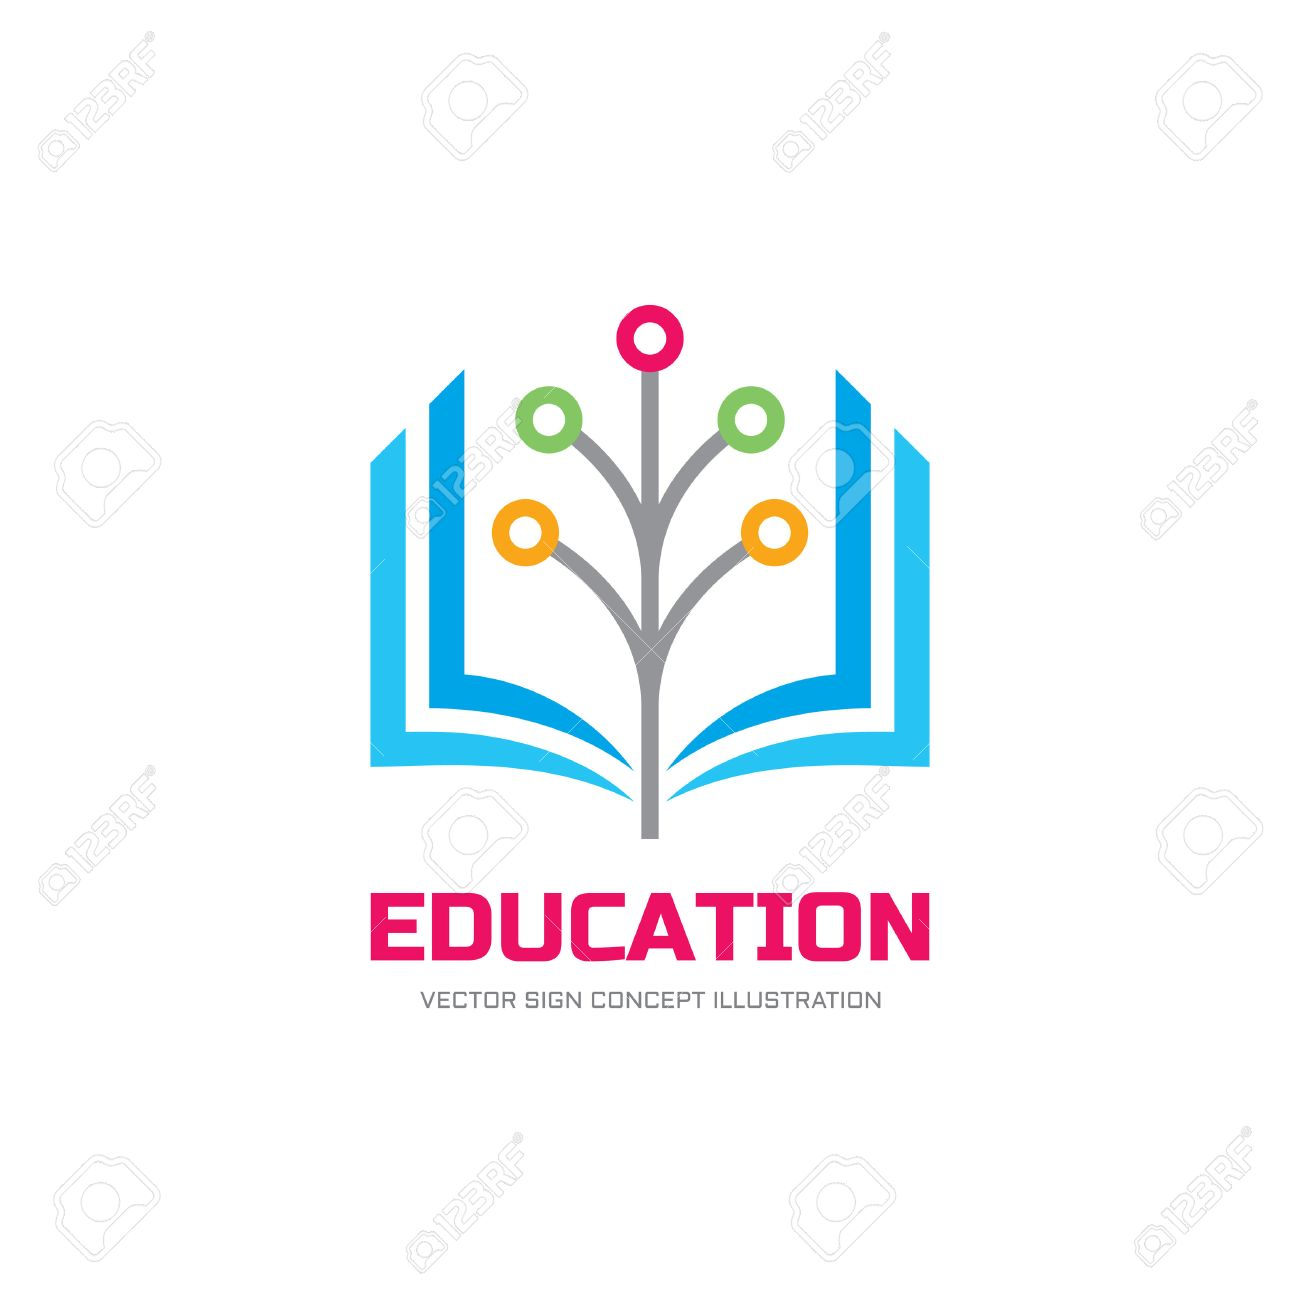 Education Vector Logo Concept Illustration School Logo Sign